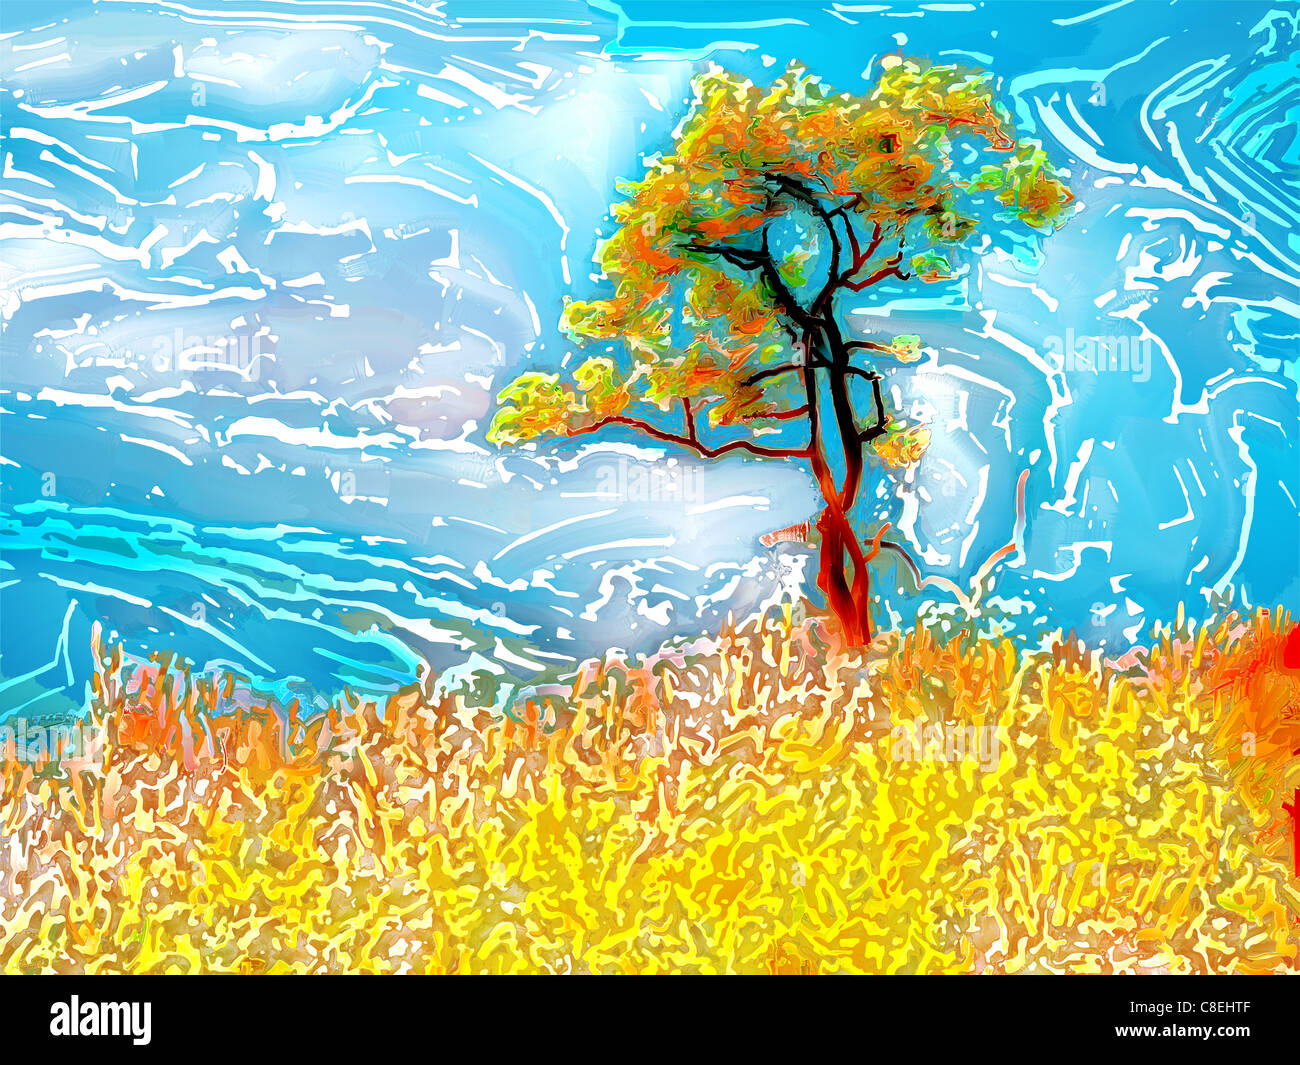 Digital painting in woodcut batik style of a tree, grass and sky - Stock Image